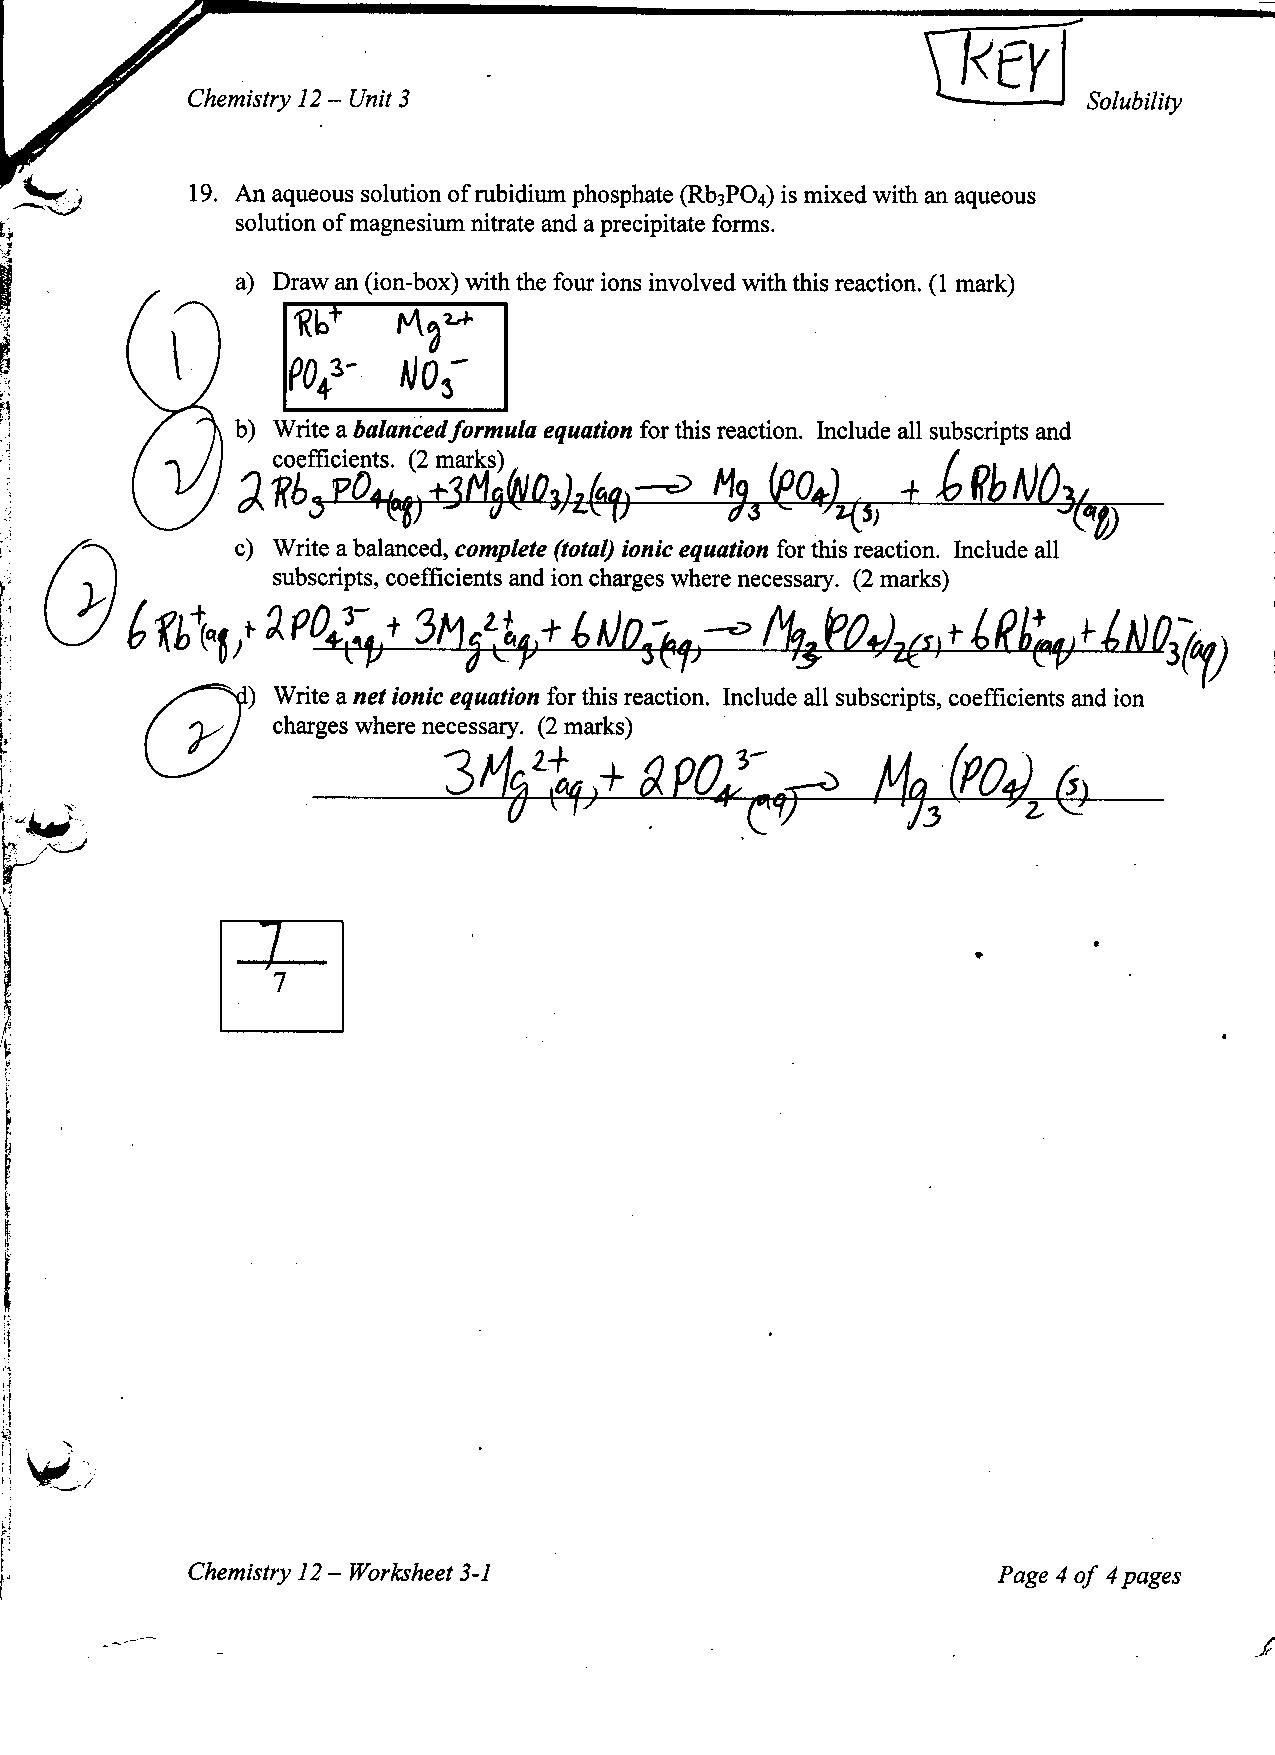 28 Chemistry Unit 1 Worksheet 3 Answers - Worksheet ...